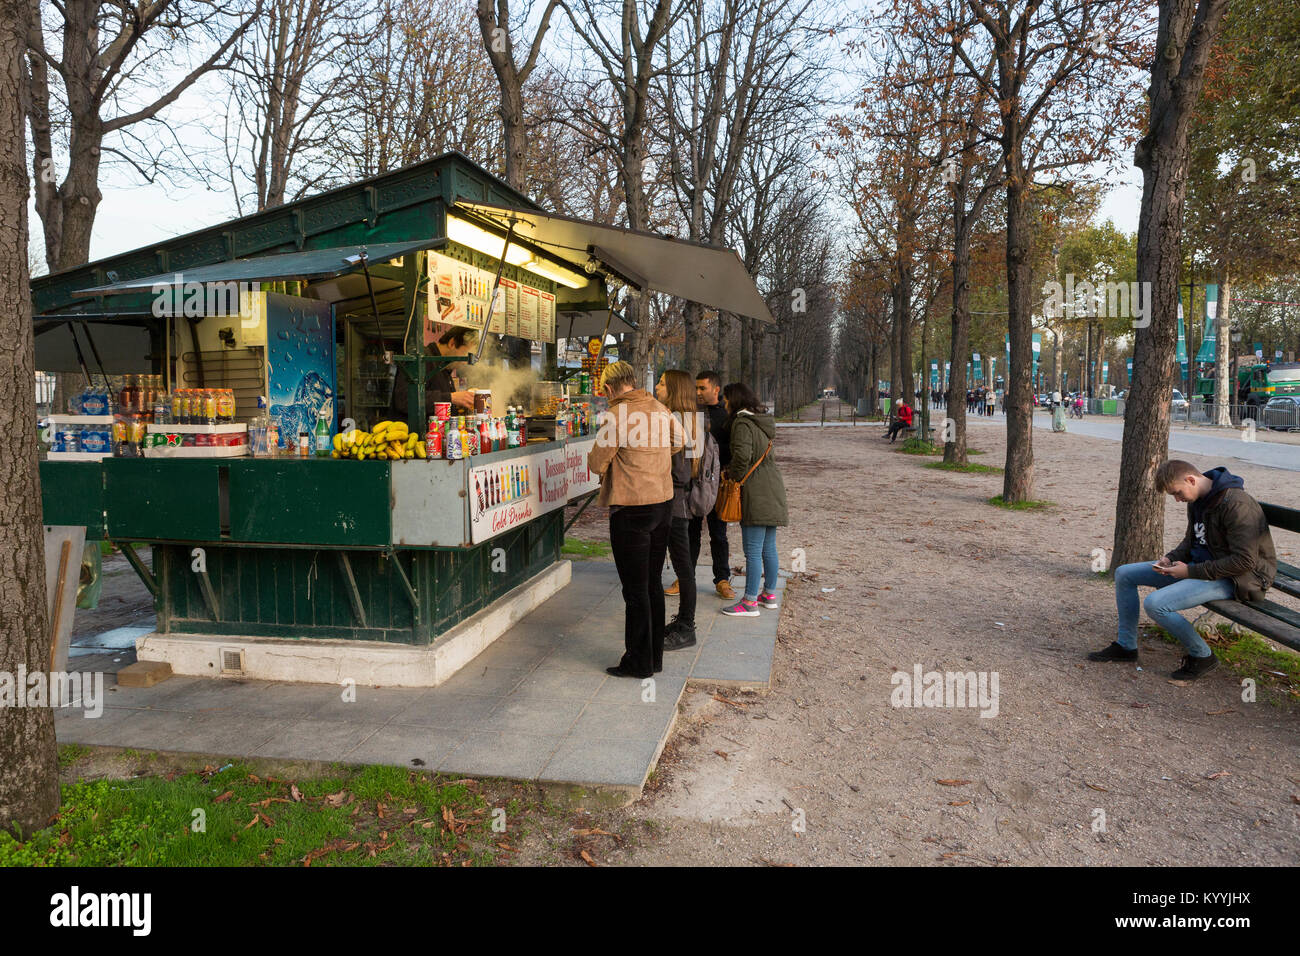 Crepe / pancake / fast food stall on the Champs Elysee in Paris, France - Stock Image